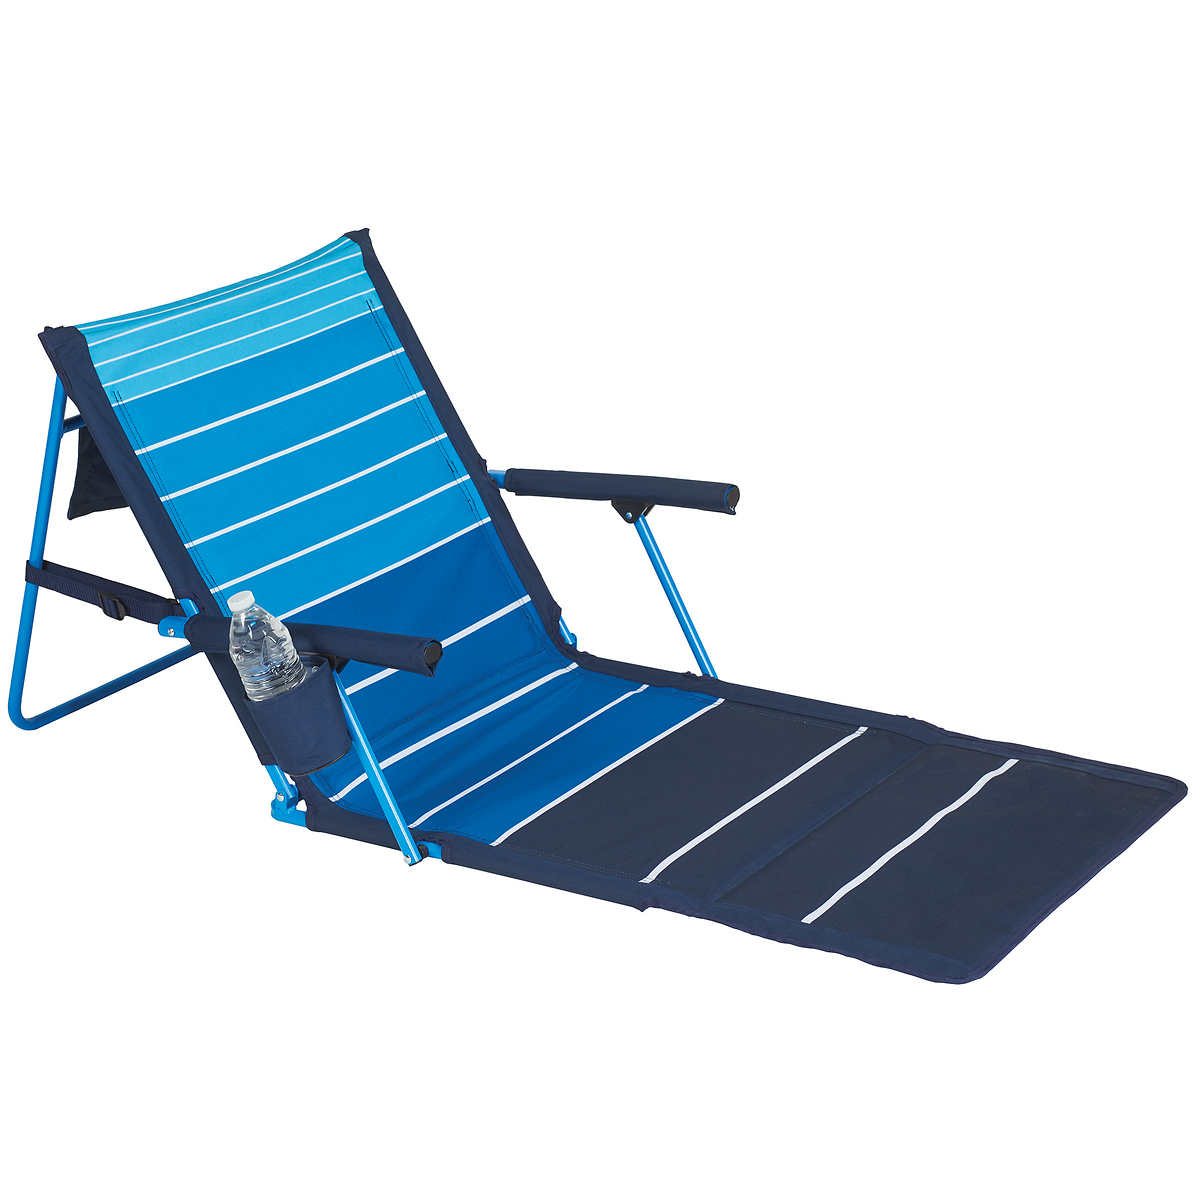 Beach lounge chair with canopy - Lightspeed Outdoors Deluxe Lounger